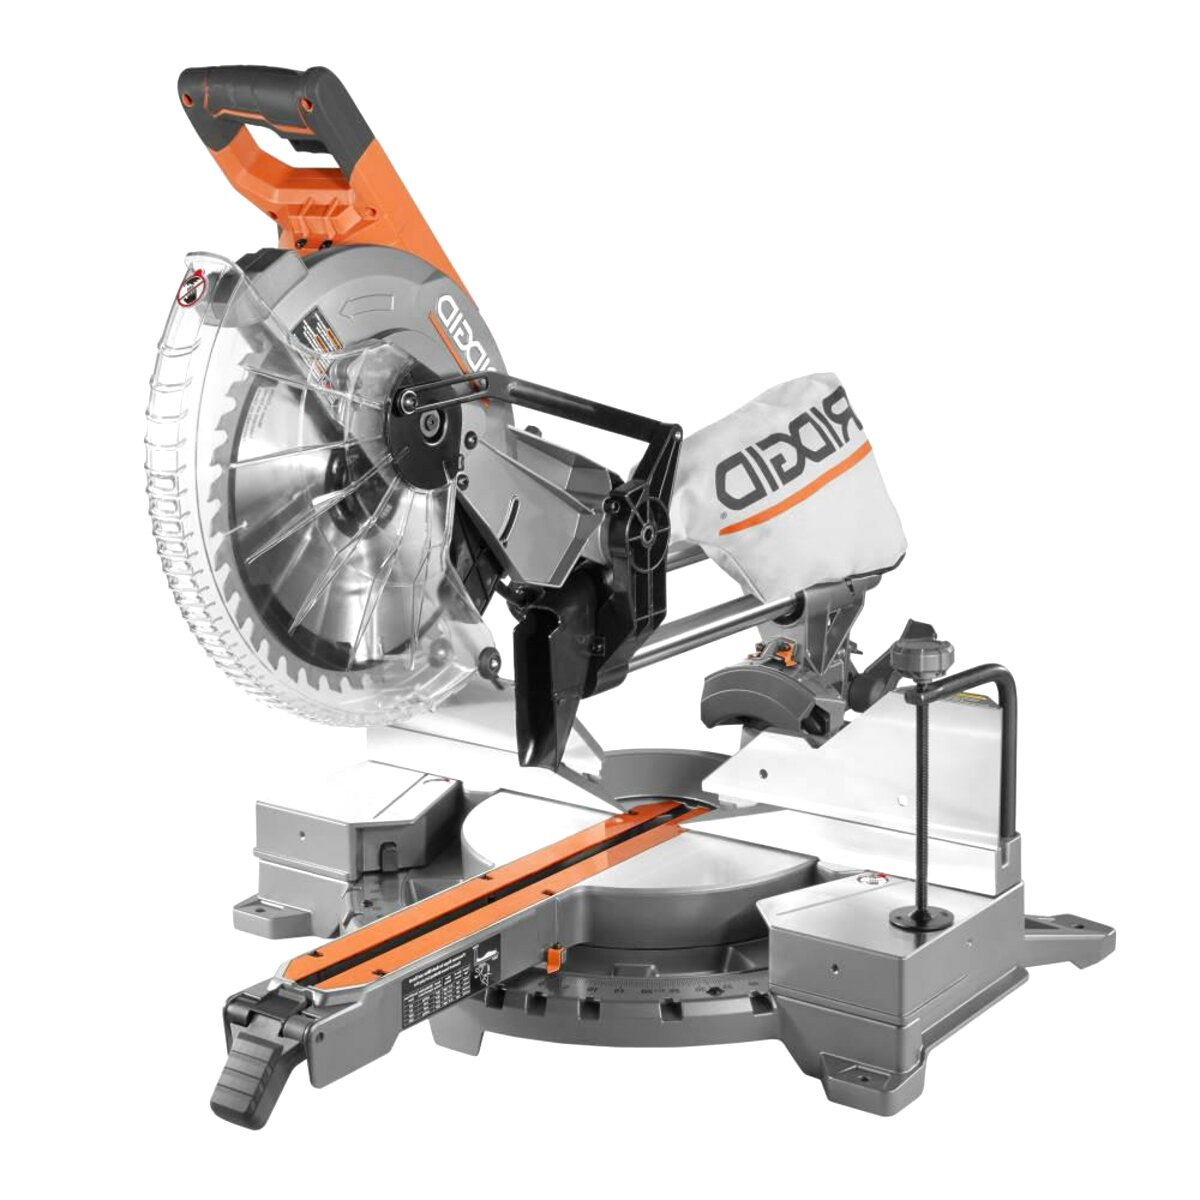 Ridgid 12 Sliding Miter Saw For Sale Only 2 Left At 65